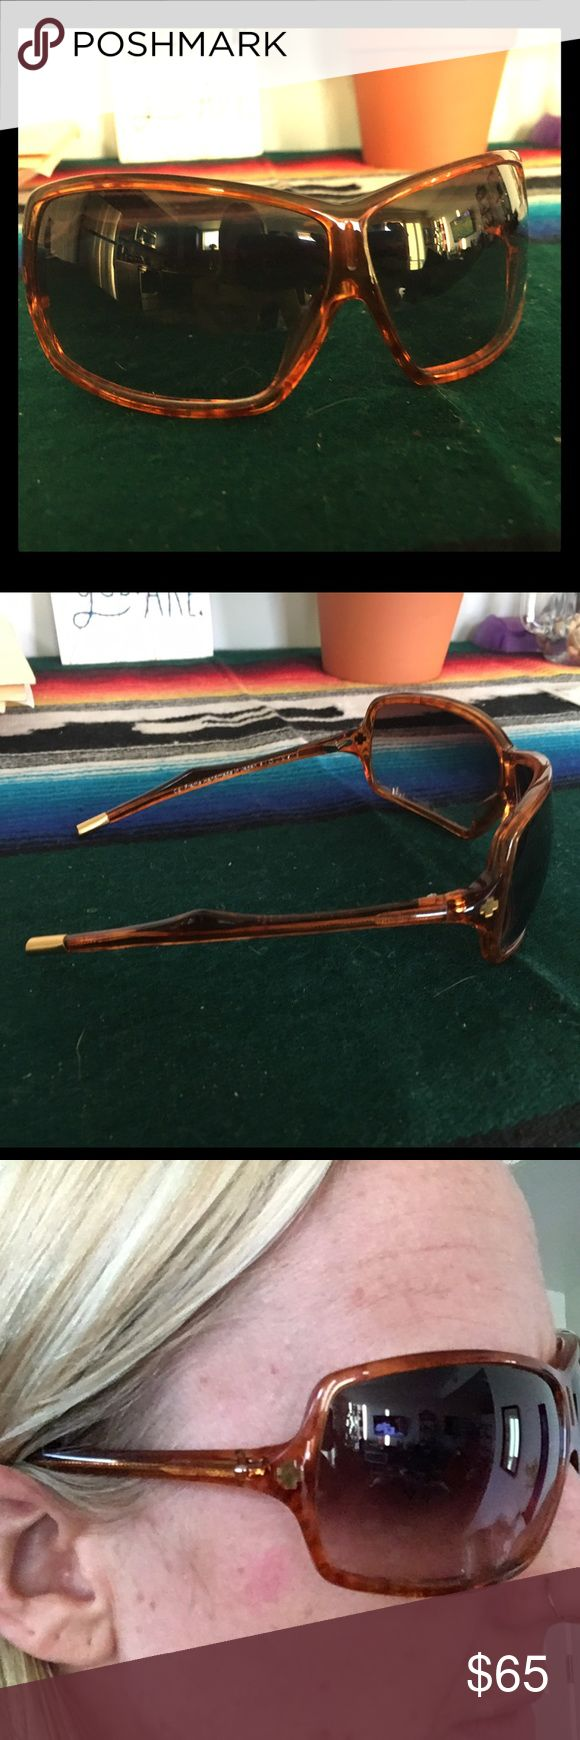 """SpyOptic unique orange shades Worn once! Somewhat squared lenses. Orange tortoise color with gold tips. I have a little larger sized head and they are too snug. In great condition. Some wearing on the case just due to storage. """"SpyOptic Hand Crafted"""" windows for your head. SPY Accessories Sunglasses"""